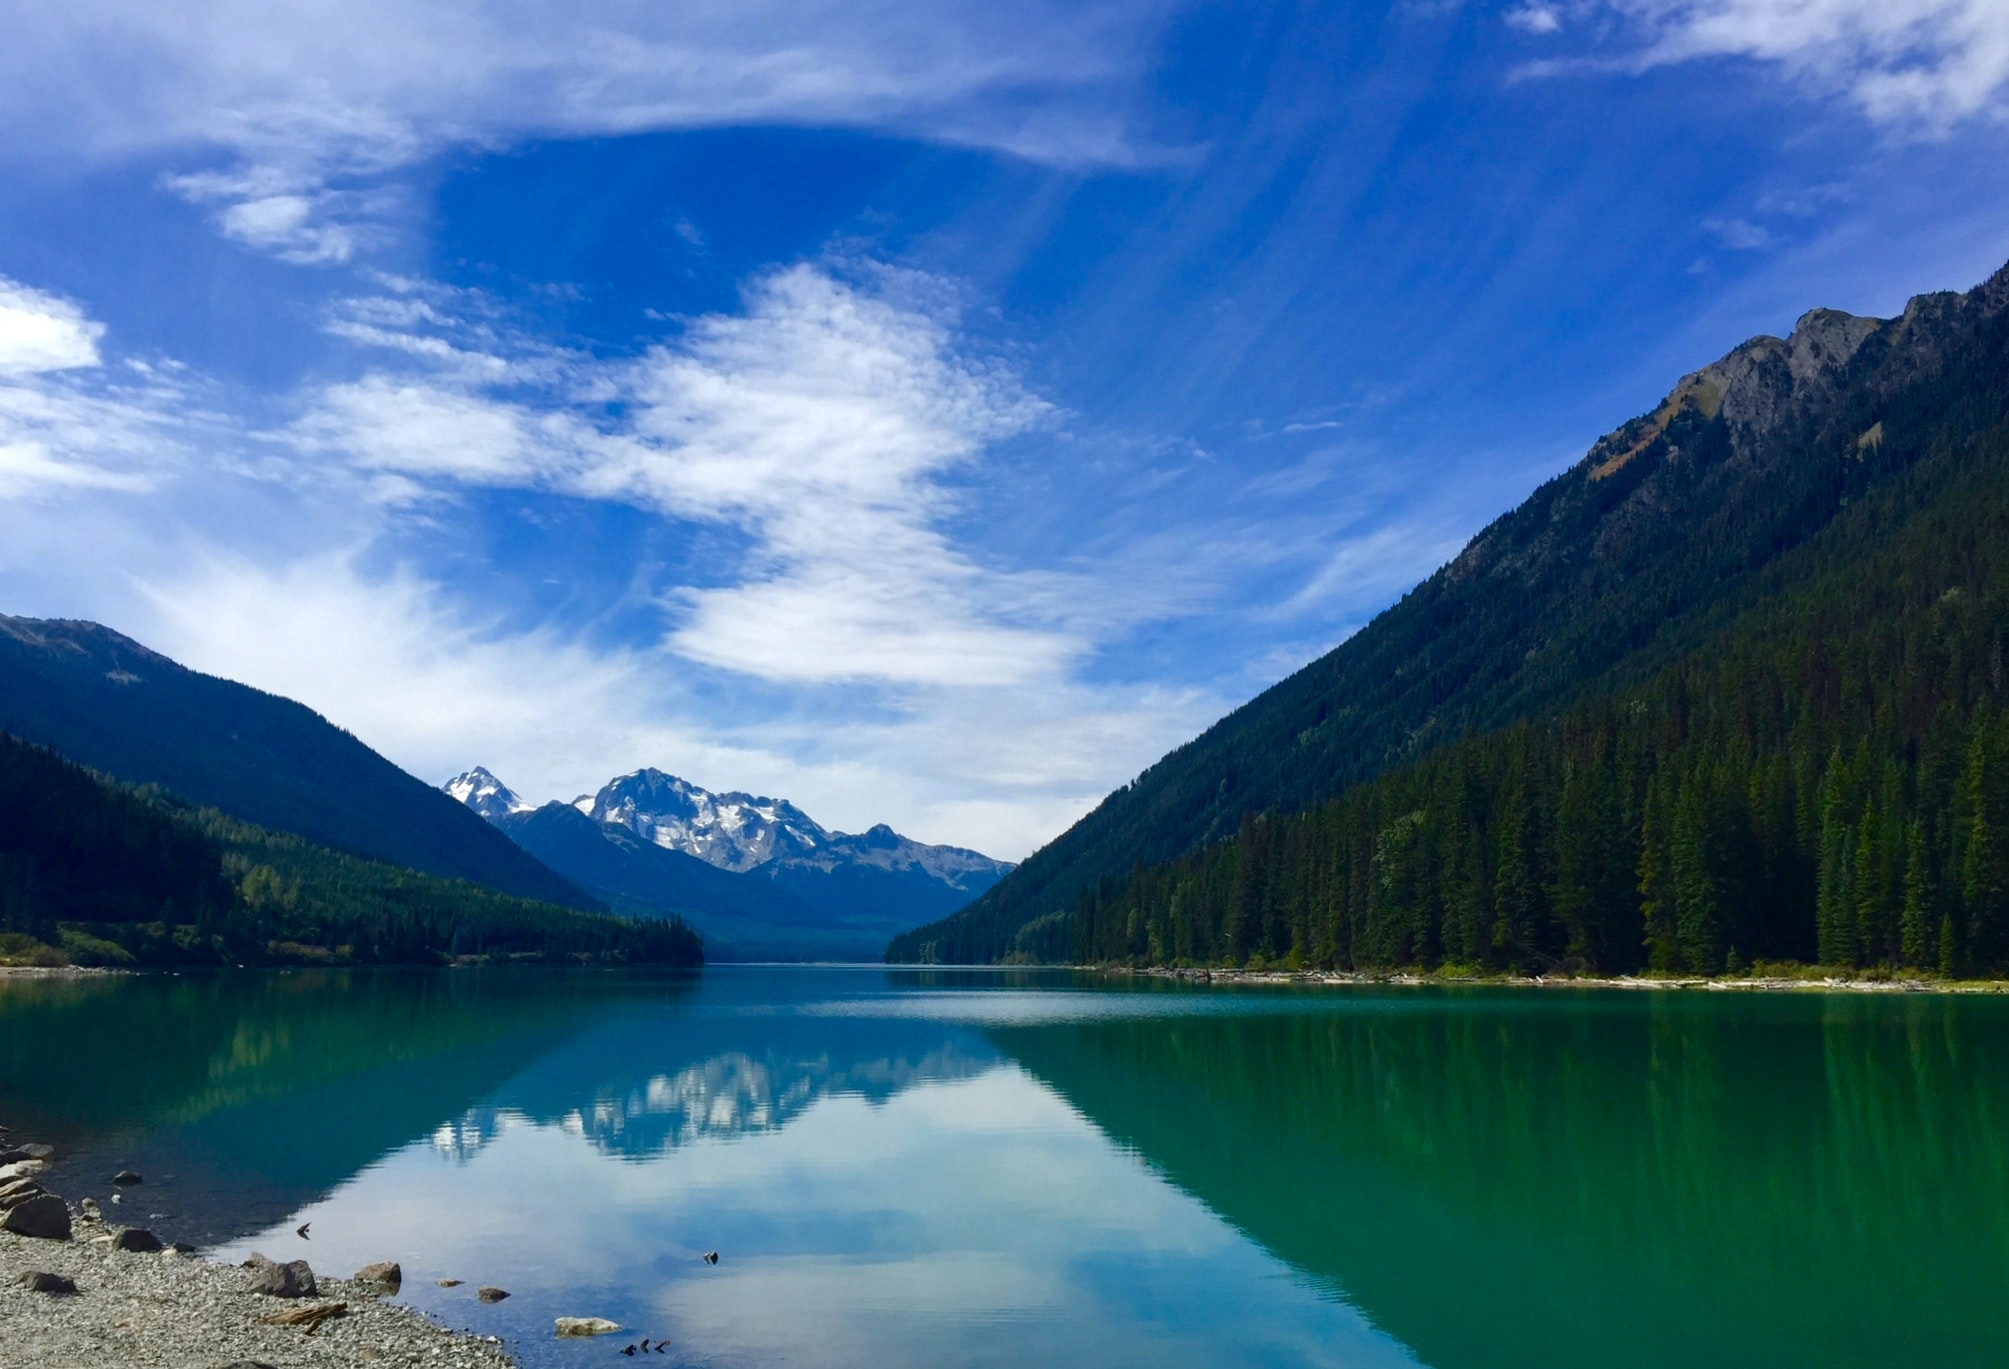 Mountains and blue sky reflected in a clear lake in British Columbia